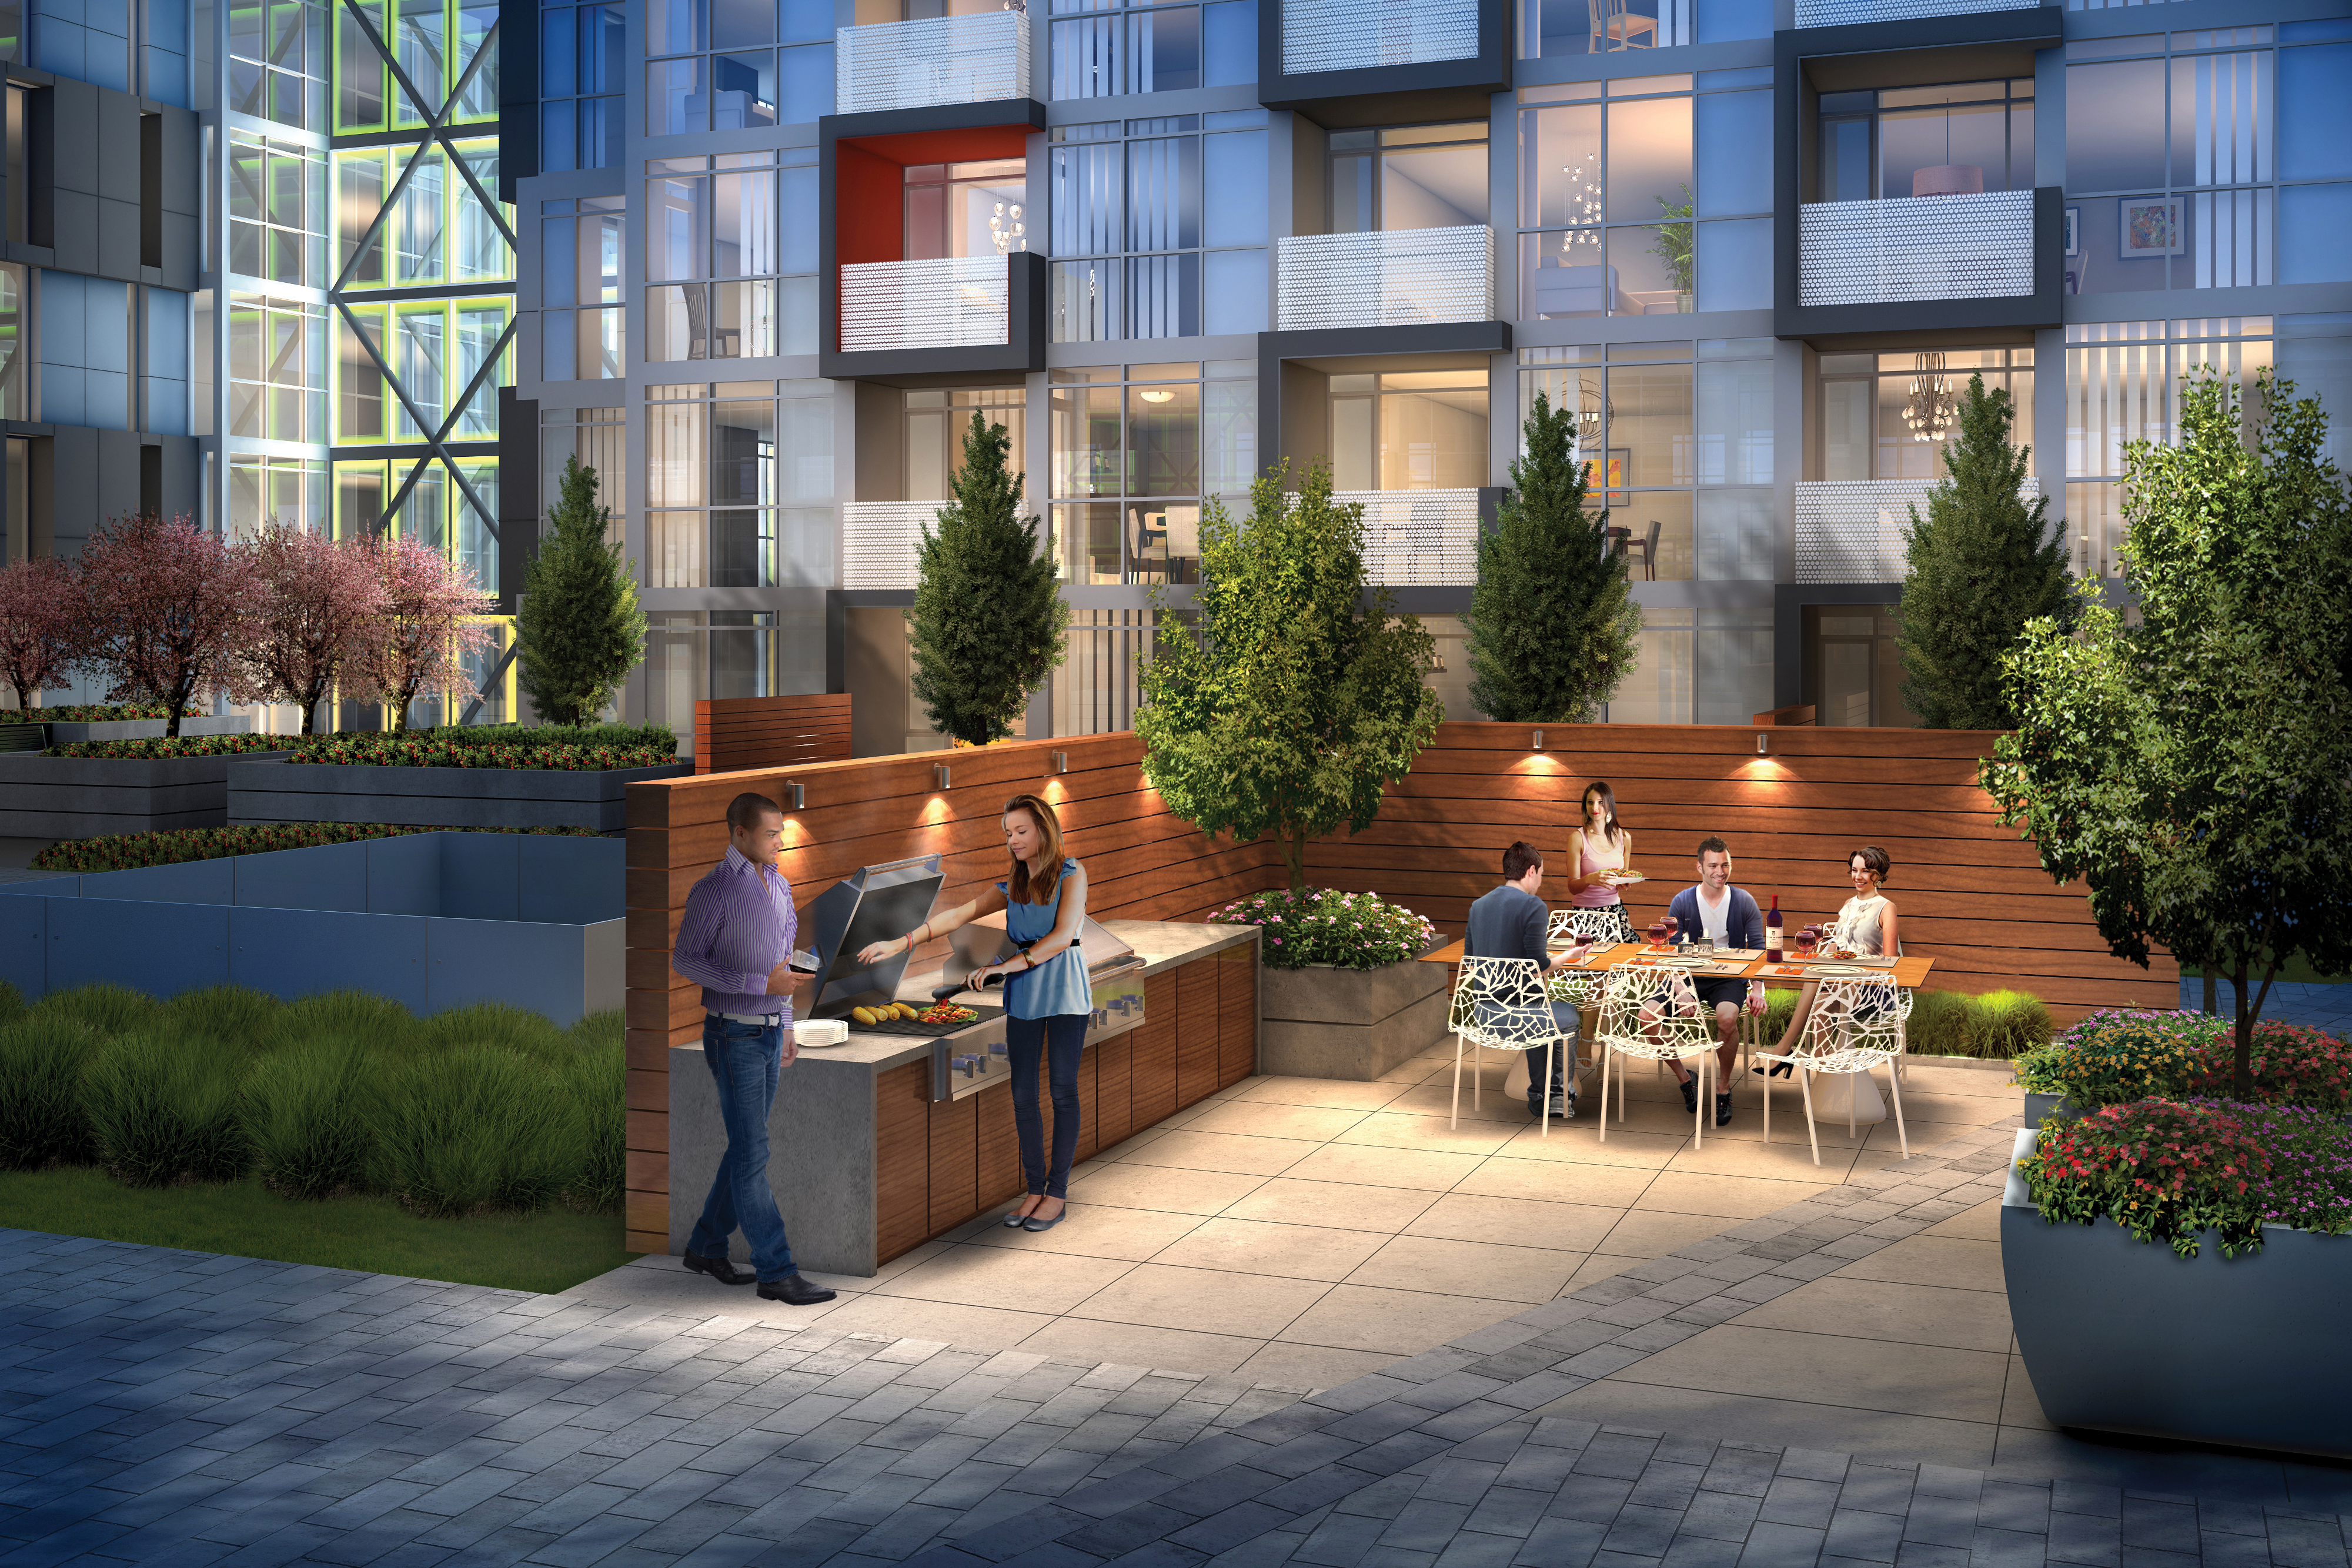 The private BBQ alcove at the east end of the Courtyard provided an intimate venue for dining al fresco on a warm summer evening